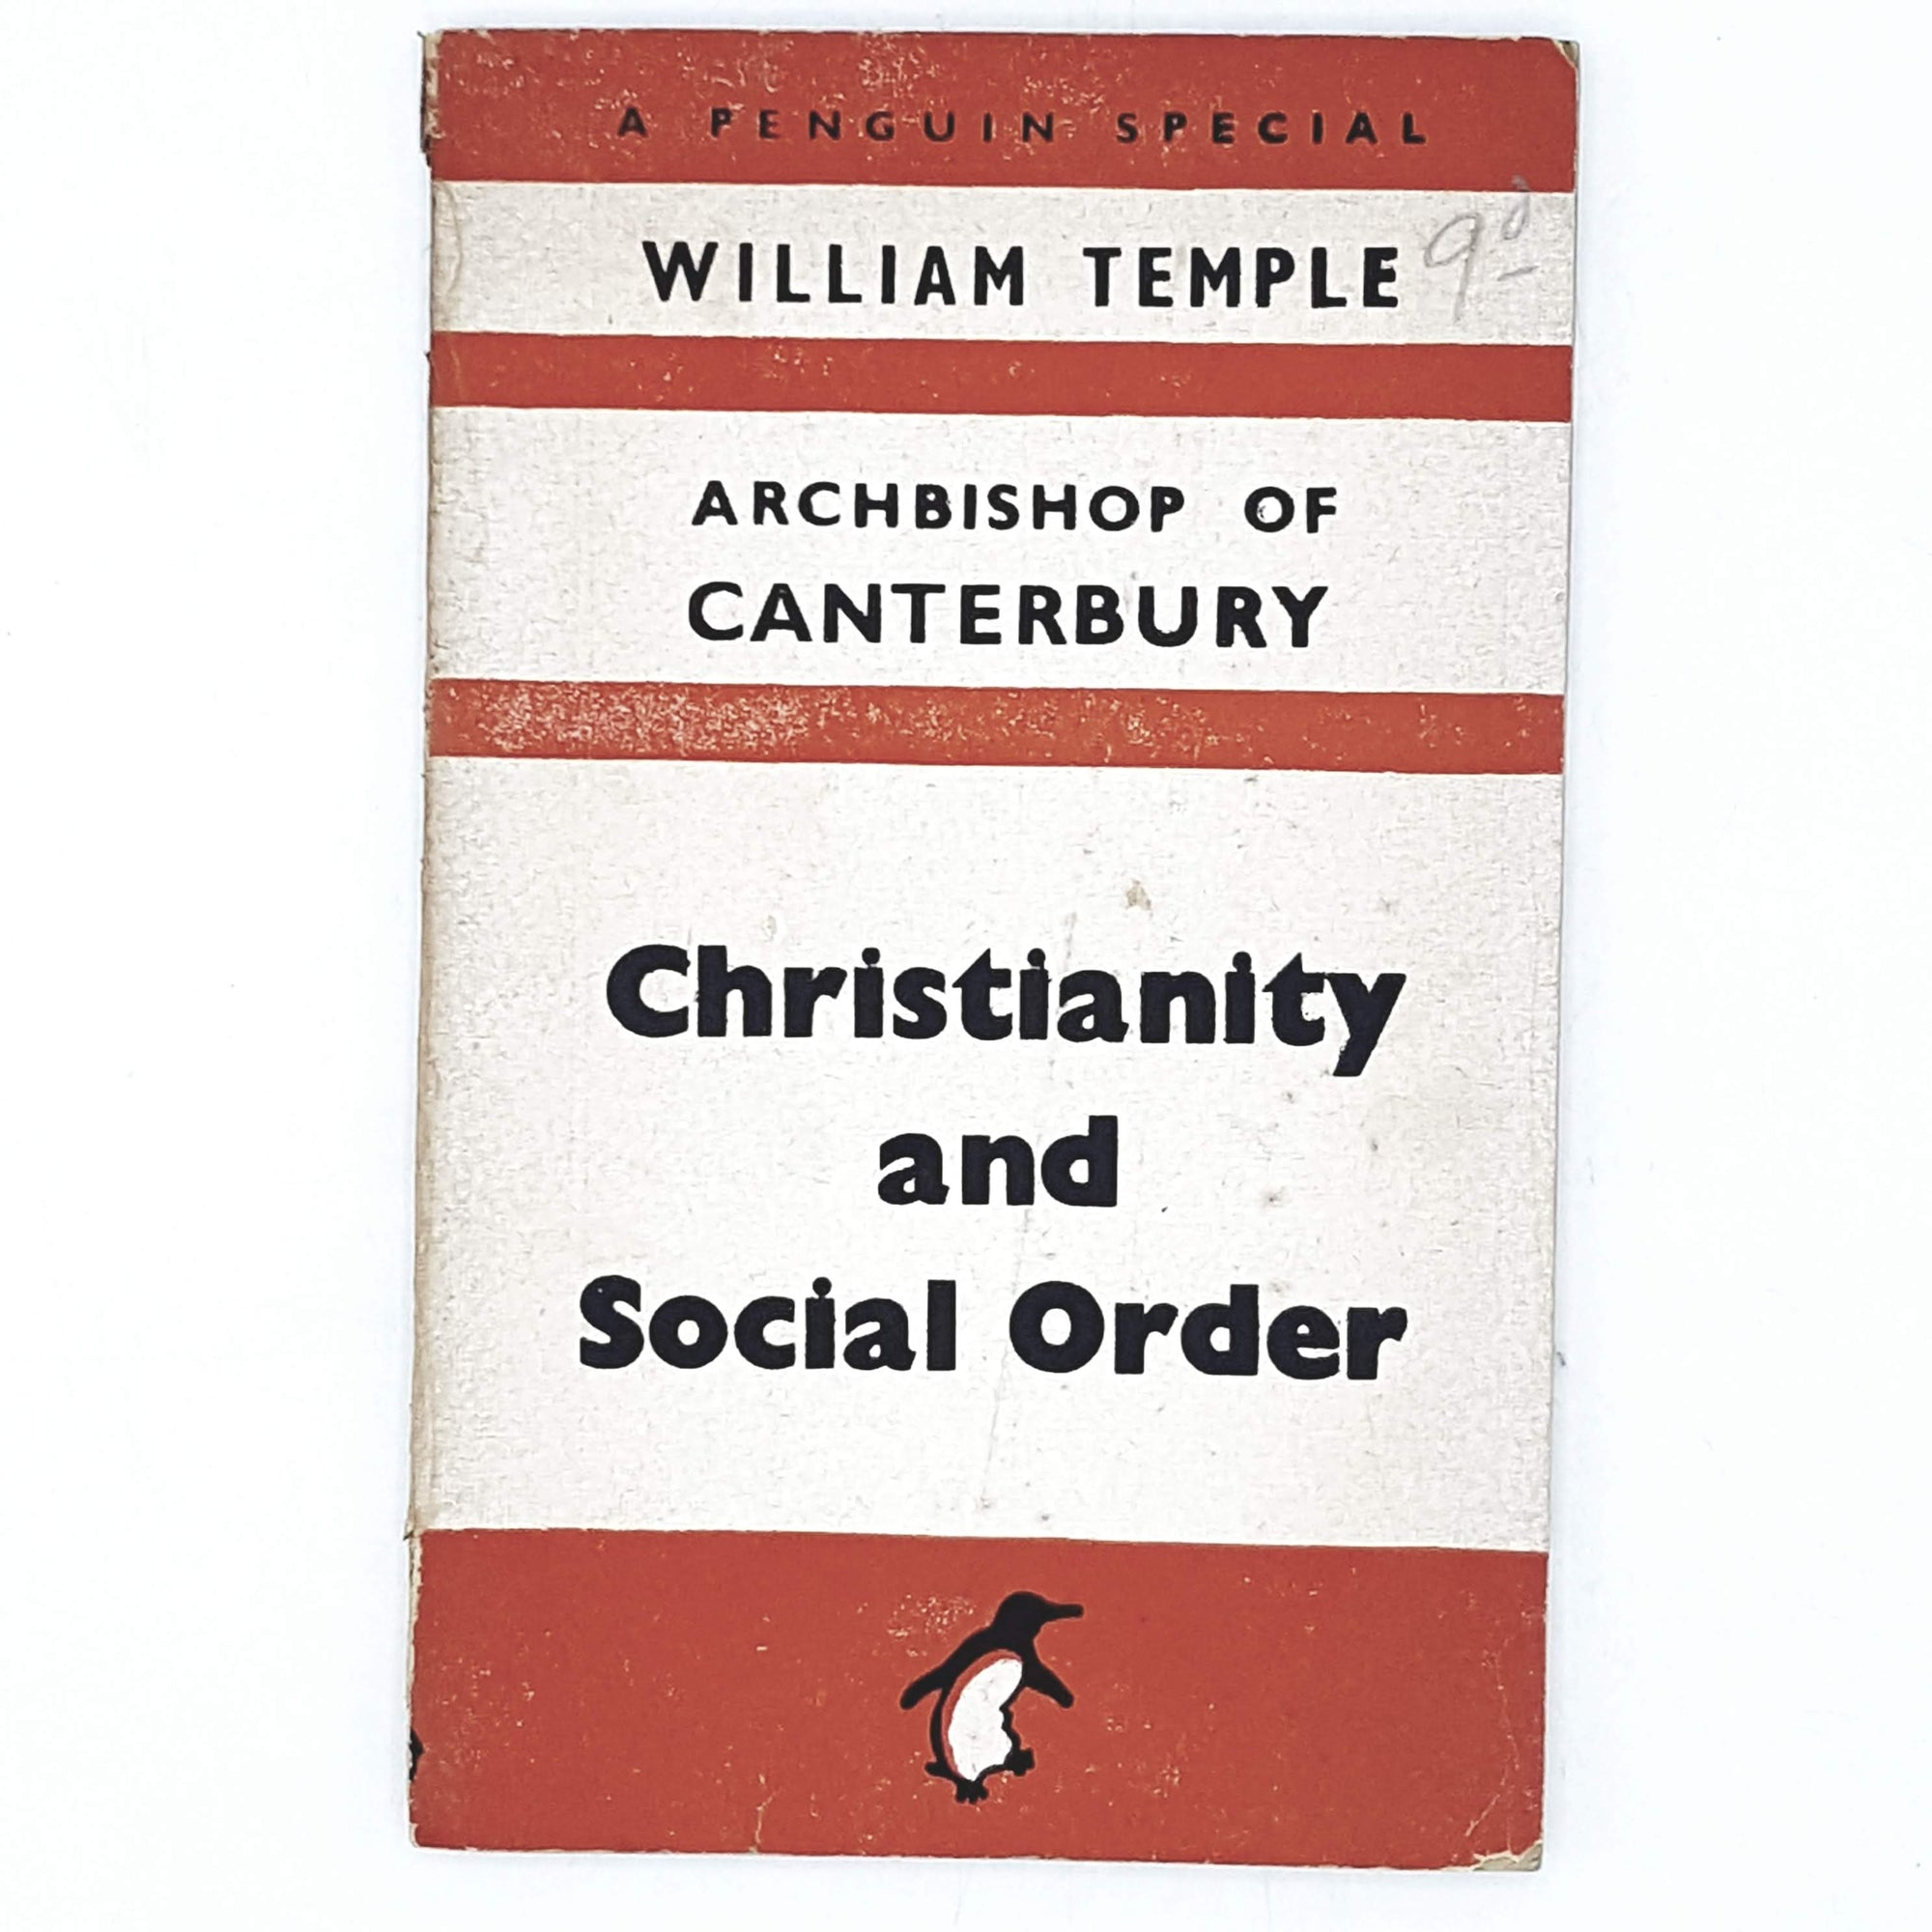 christianity-red-special-vintage-penguin-country-house-library